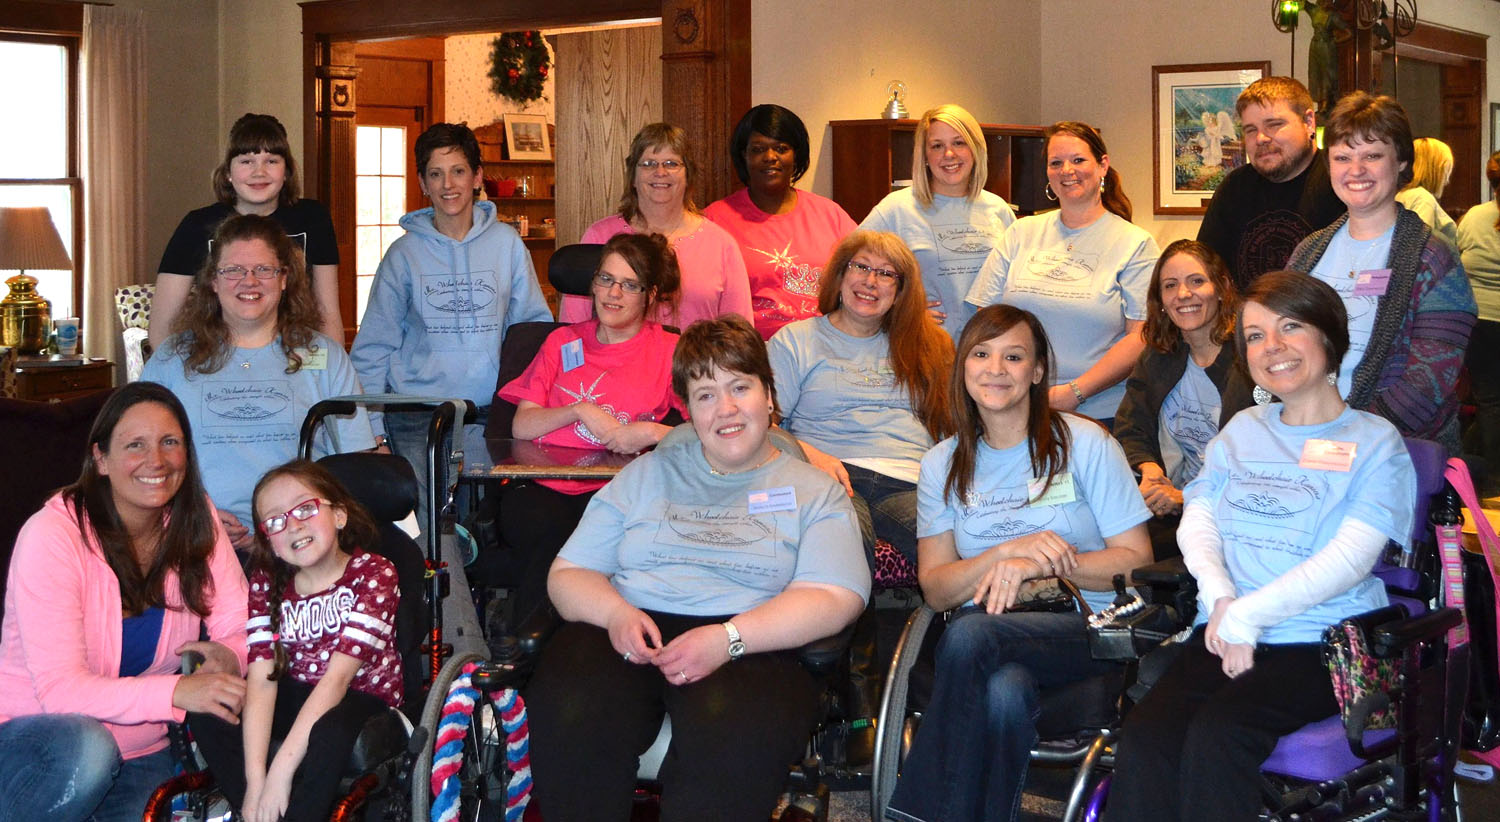 Contestants and committee at Ronald McDonald House